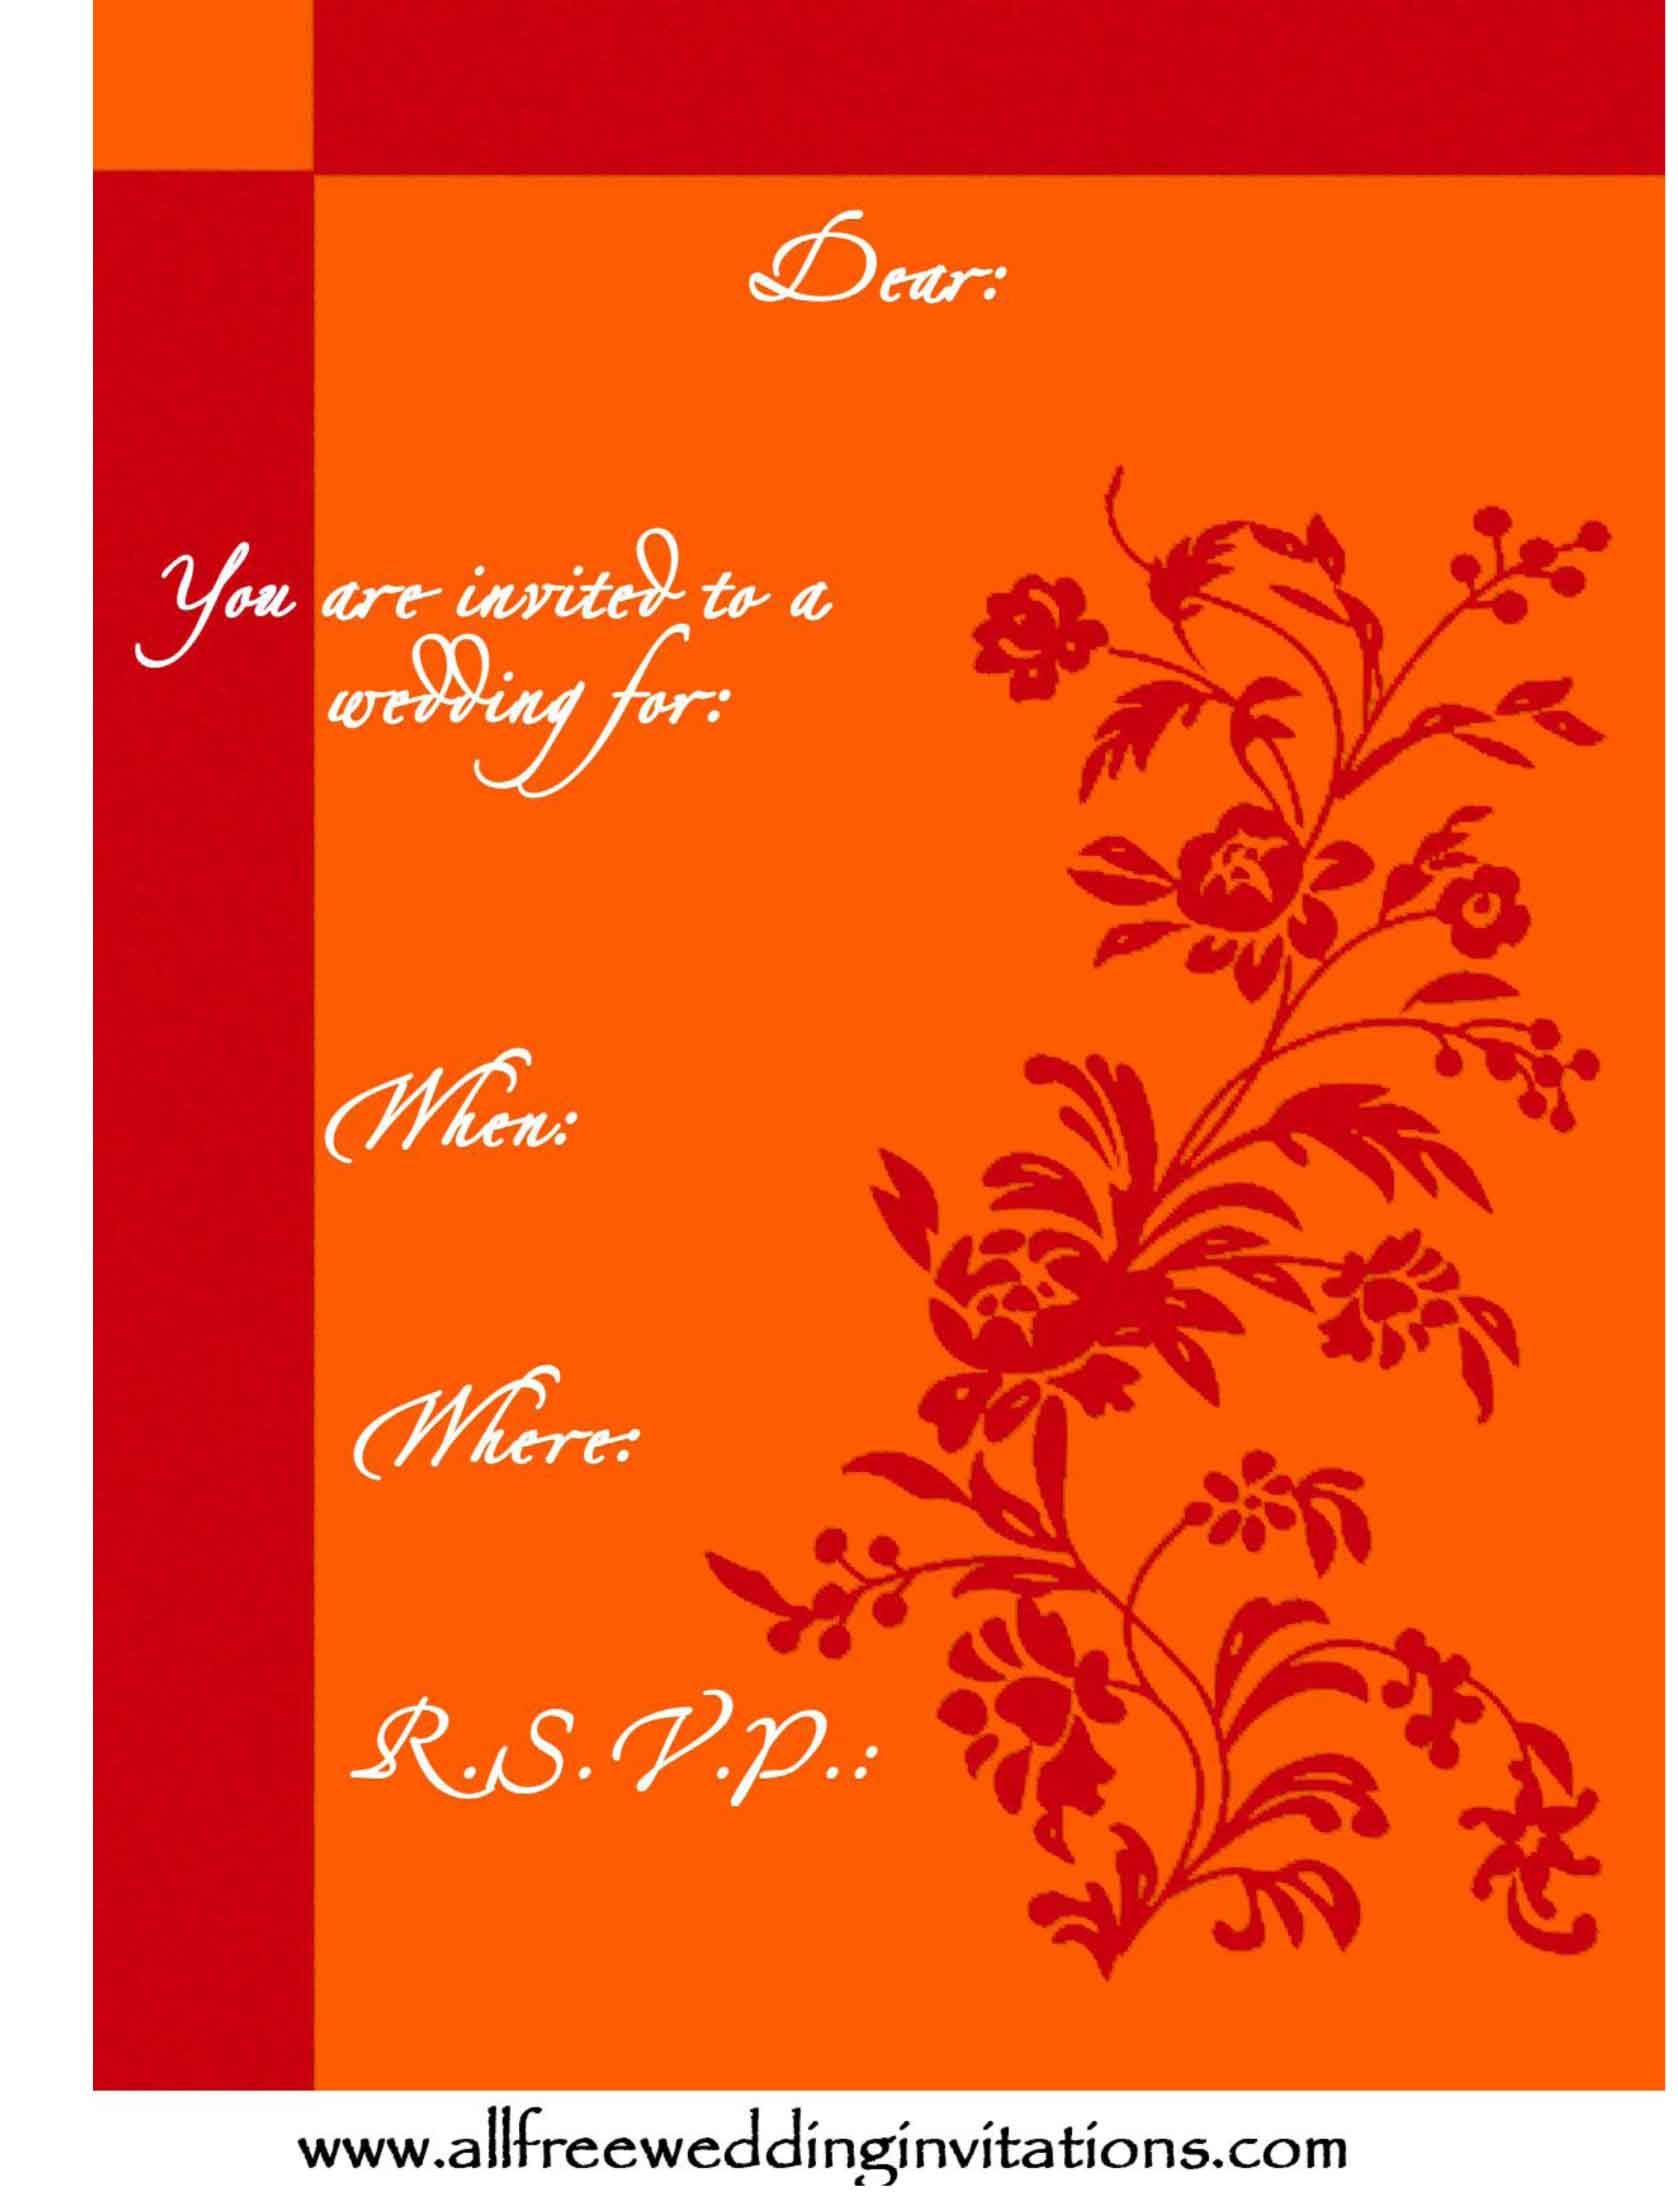 Classic Wedding Invites Templates- ALL FREE Wedding Invitations